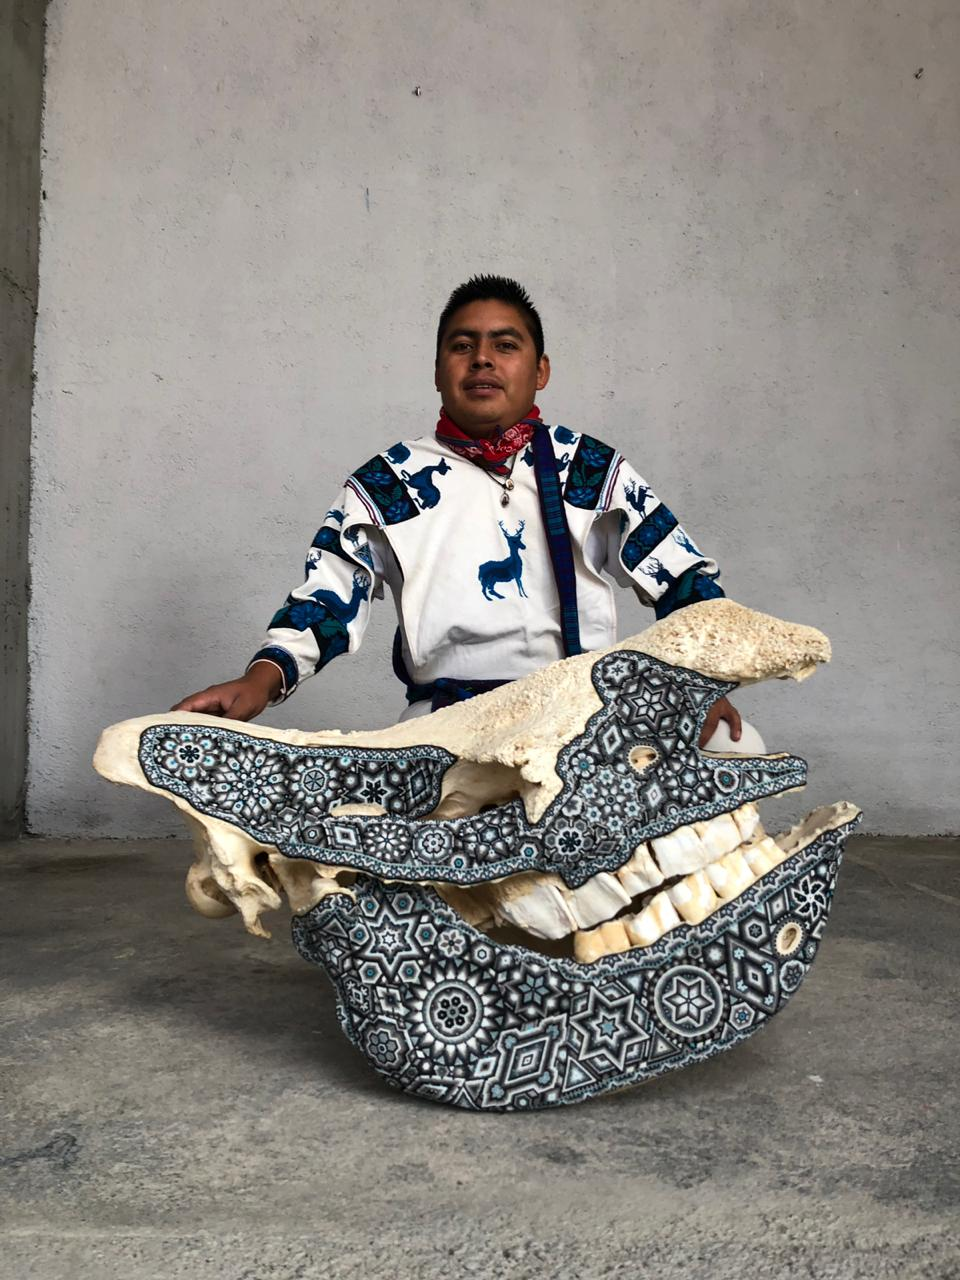 Rhinoceros skull intervened with crystal beads and the Huichol artist Sergio Bautista in the background